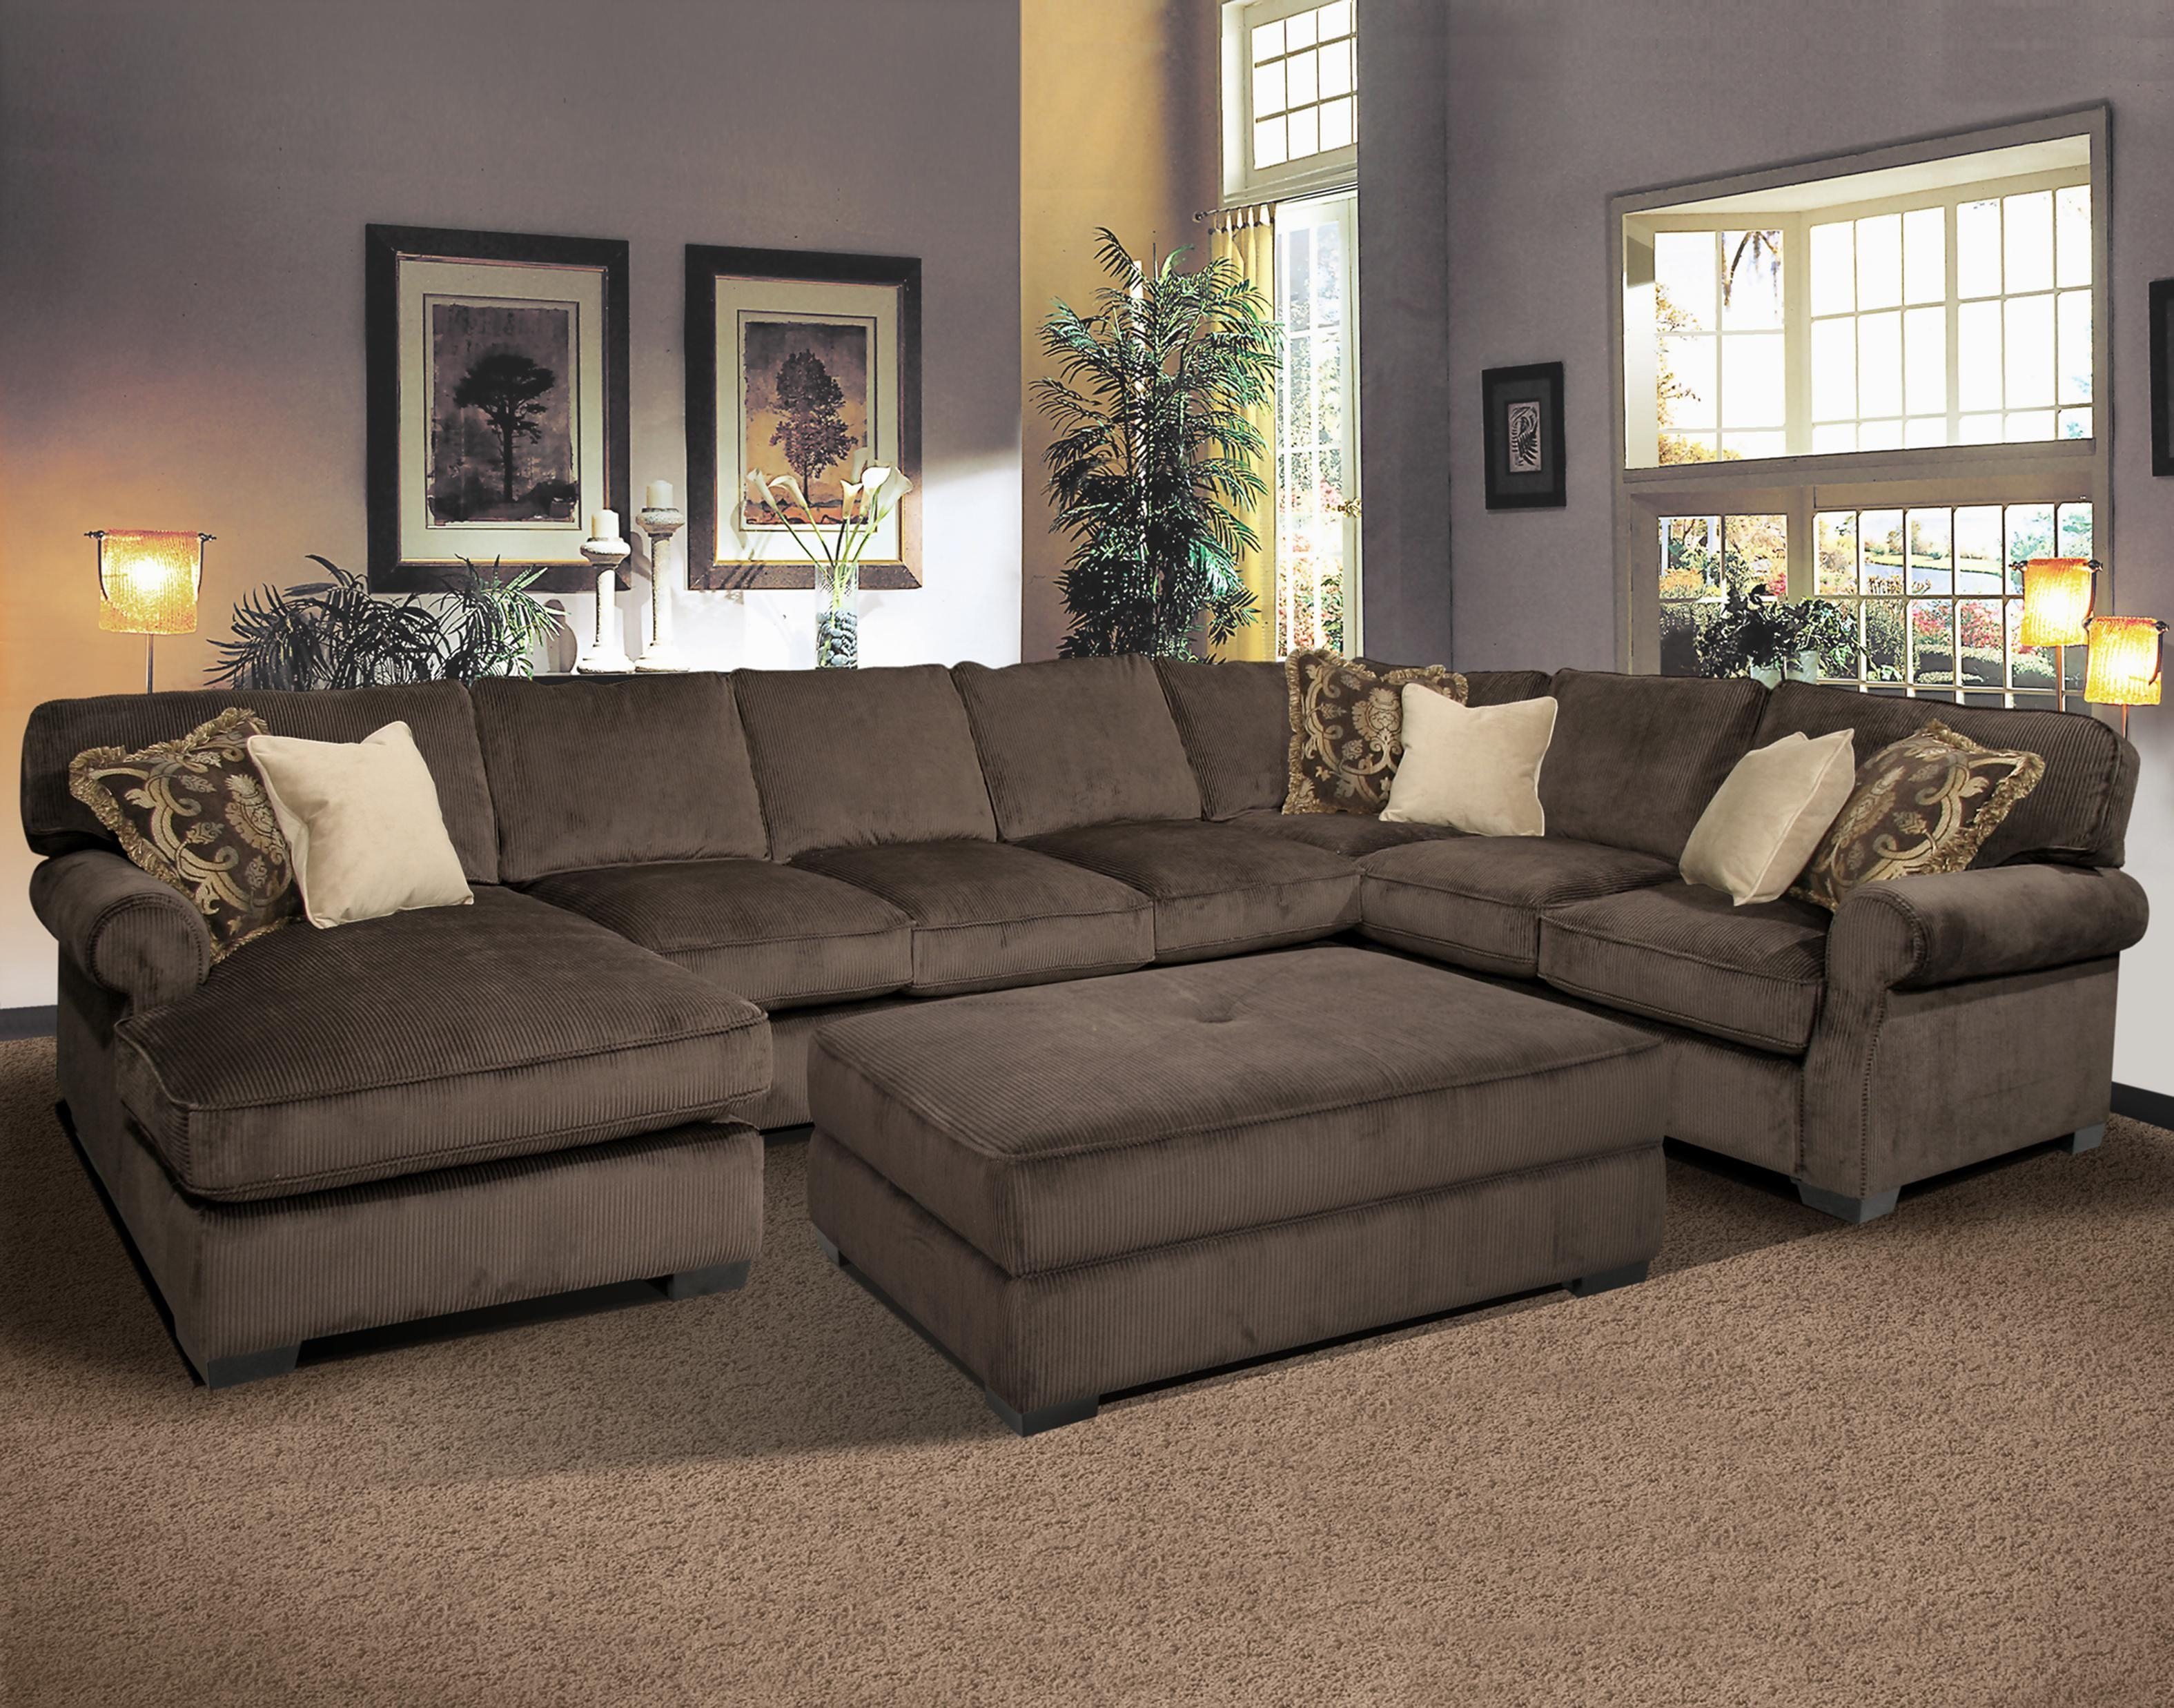 15 Photos Goose Down Sectional Sofa Ideas : down sectional sofa - Sectionals, Sofas & Couches